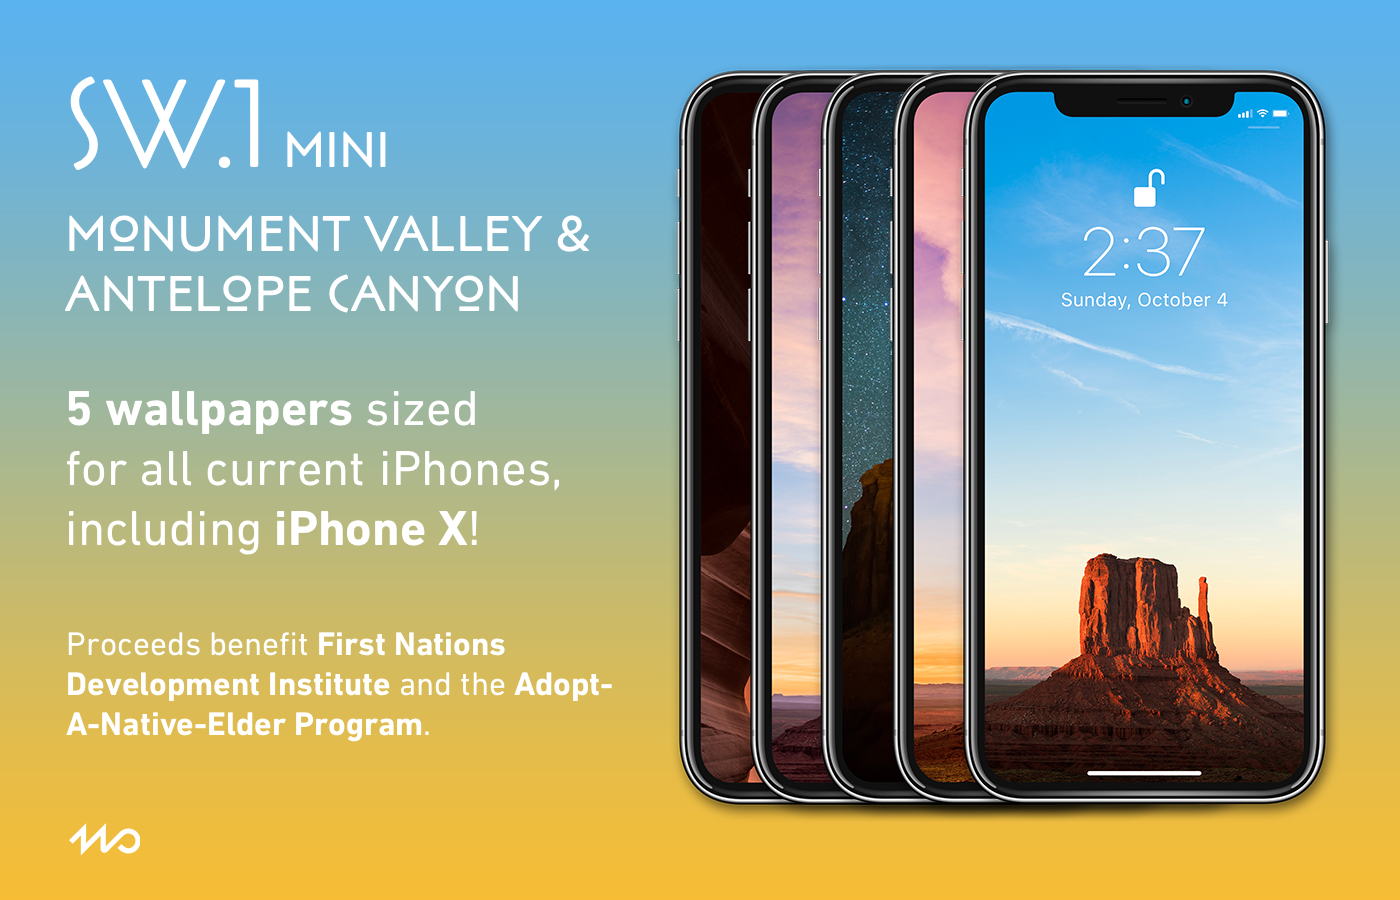 SW.1 mini - SW.1 miniincludes iPhone wallpapers made from photos taken in Monument Valleyand Antelope Canyon, both of which are part of the Navajo Nation.All proceeds from the sale of SW.1 mini benefit equally the First Nations Development Instituteand the Adopt-A-Native-Elder Program.